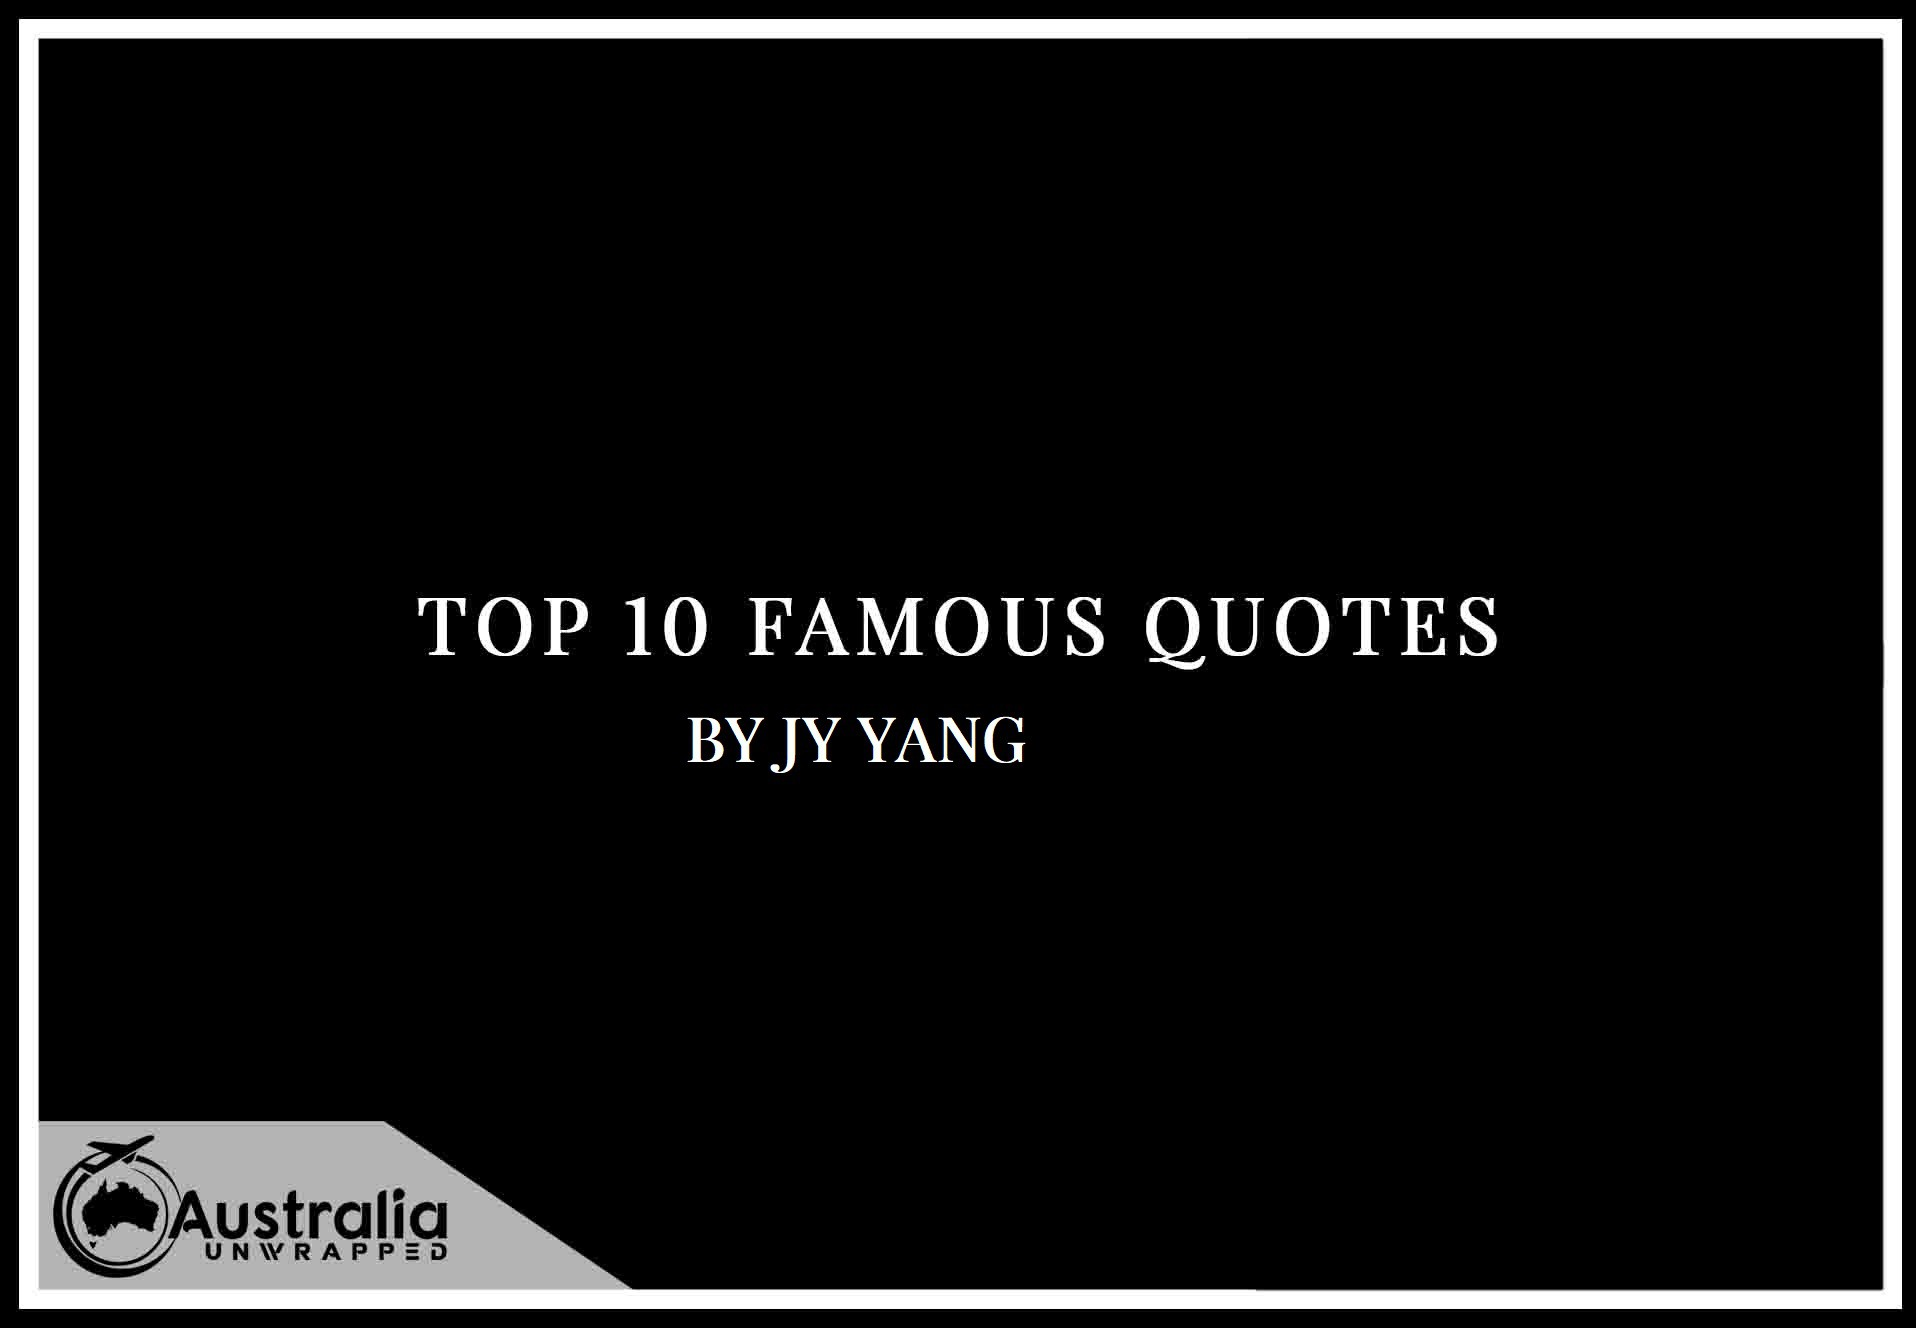 Top 10 Famous Quotes by Author J.Y. Yang